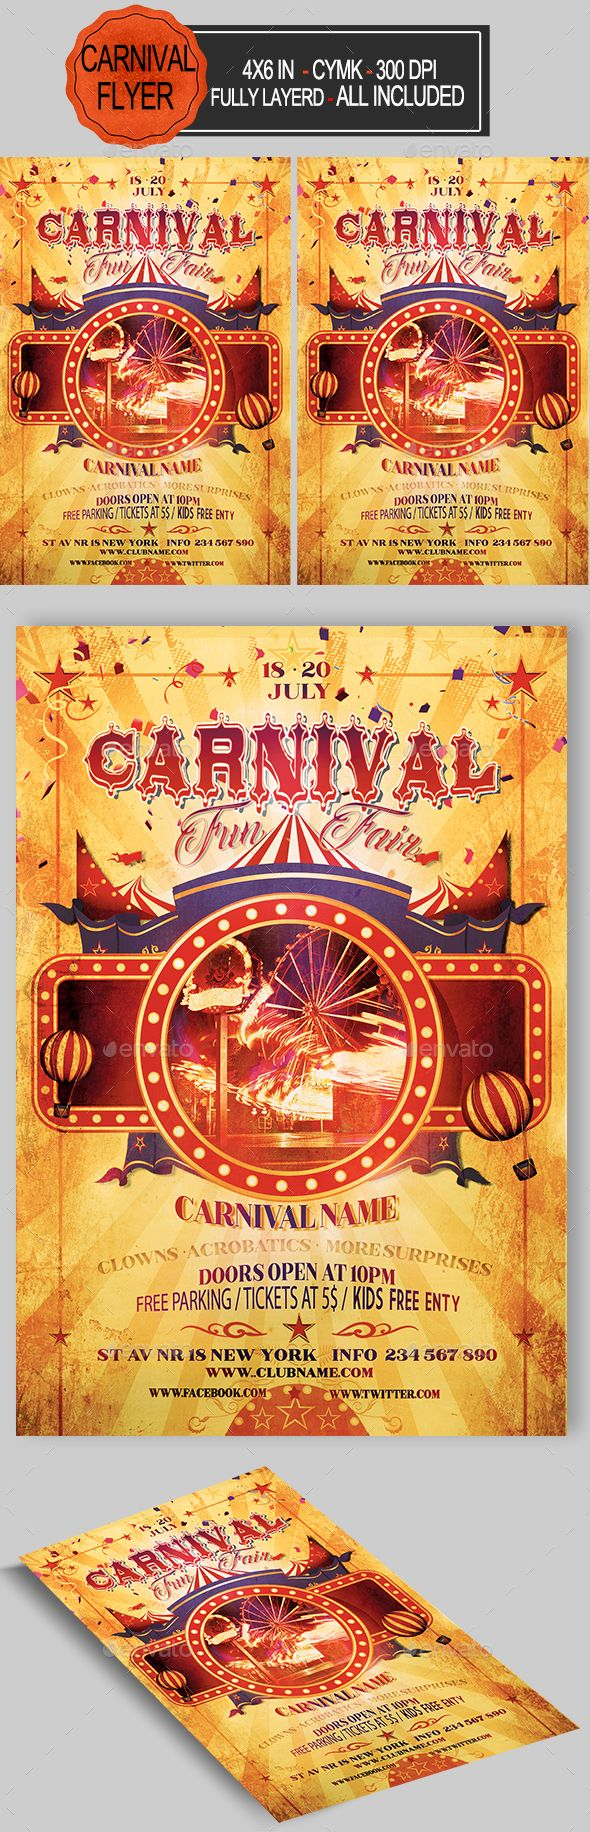 Funfair Carnival Flyer Pinterest Flyer Template Carnival And